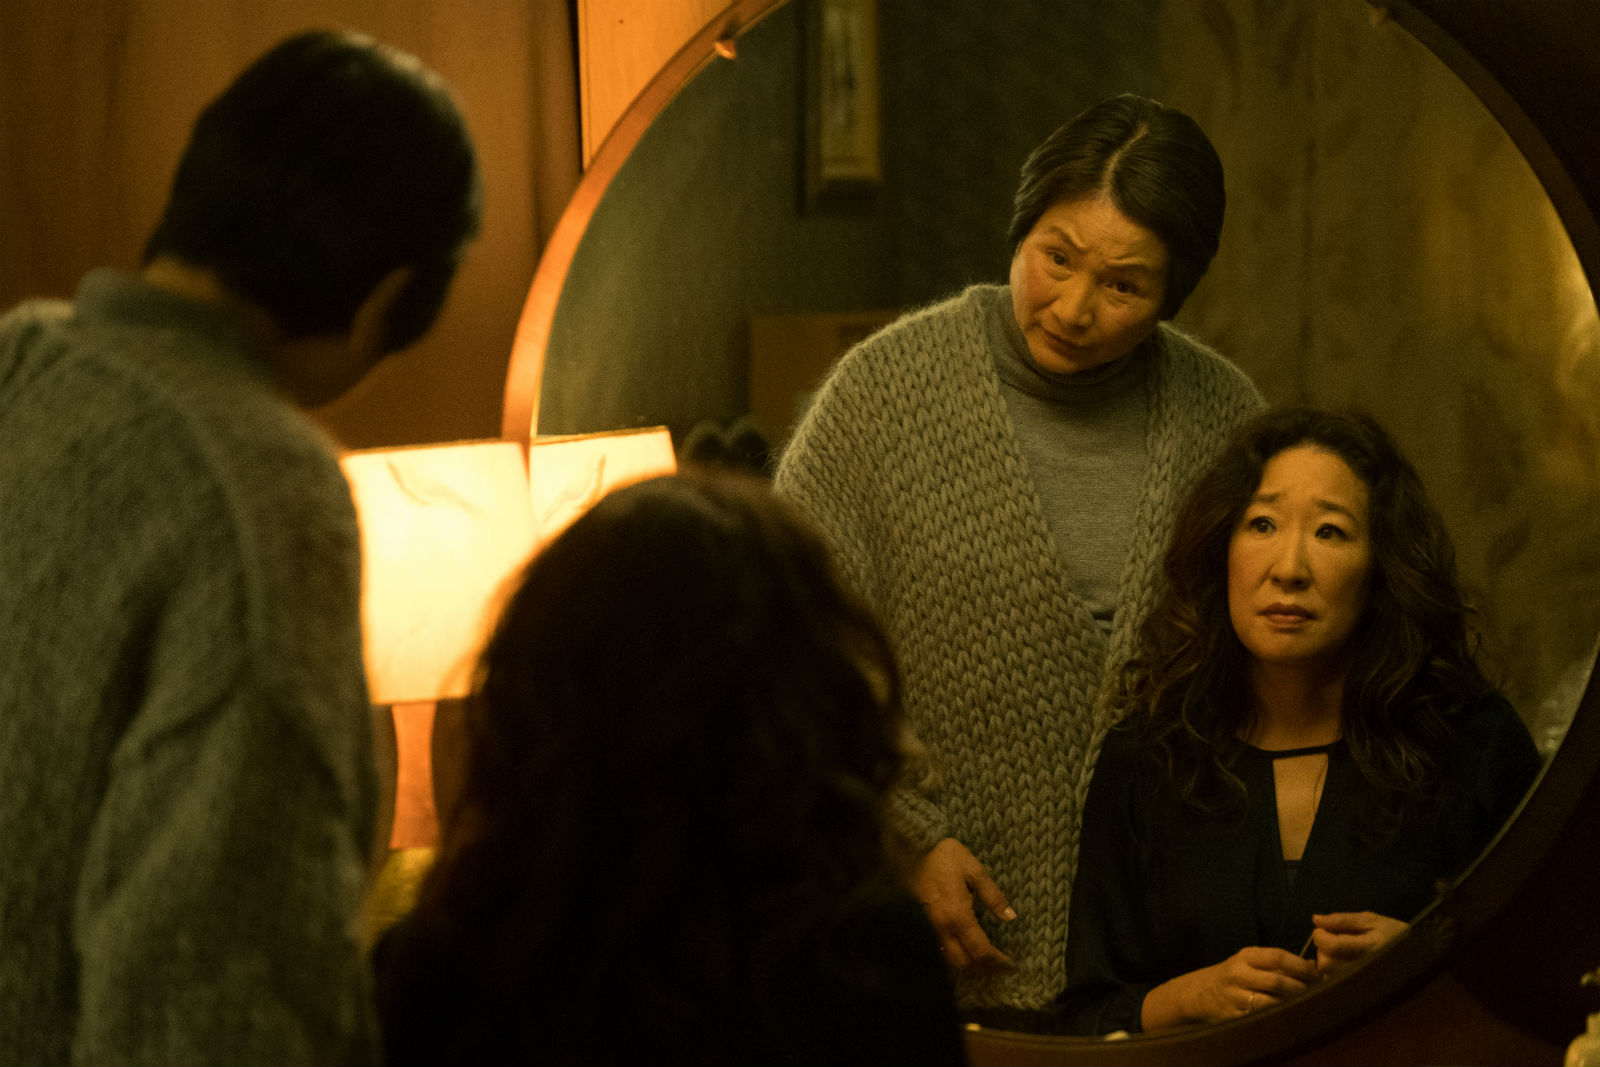 The amazing Cheng Pei Pei with Sandra Oh in Meditation Park.